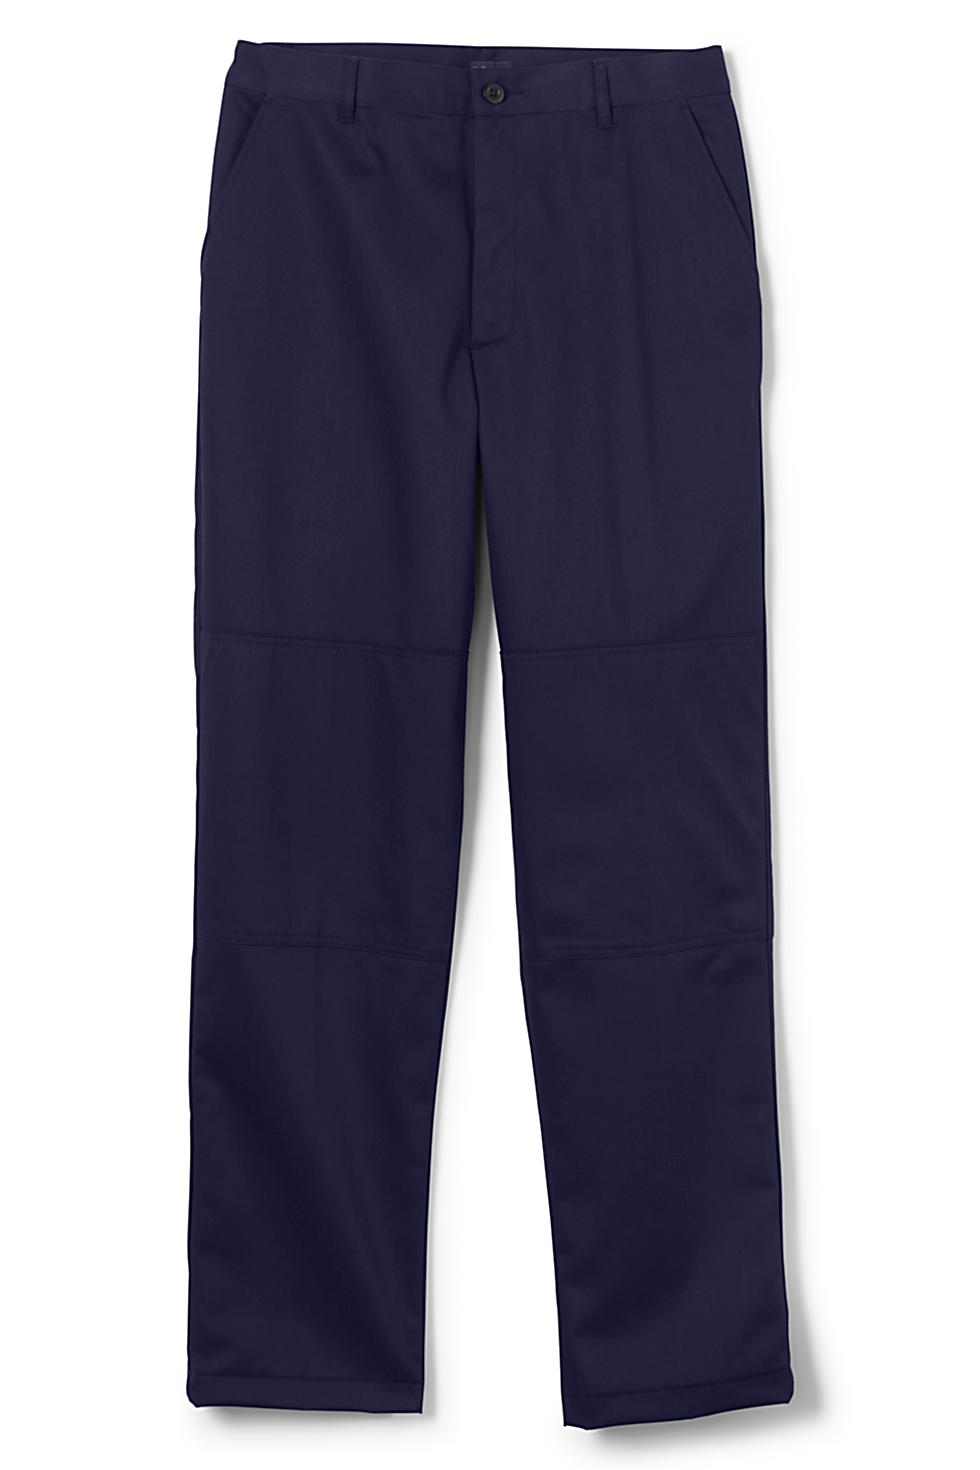 Lands' End Men's Unfinished Plain Twill Pants